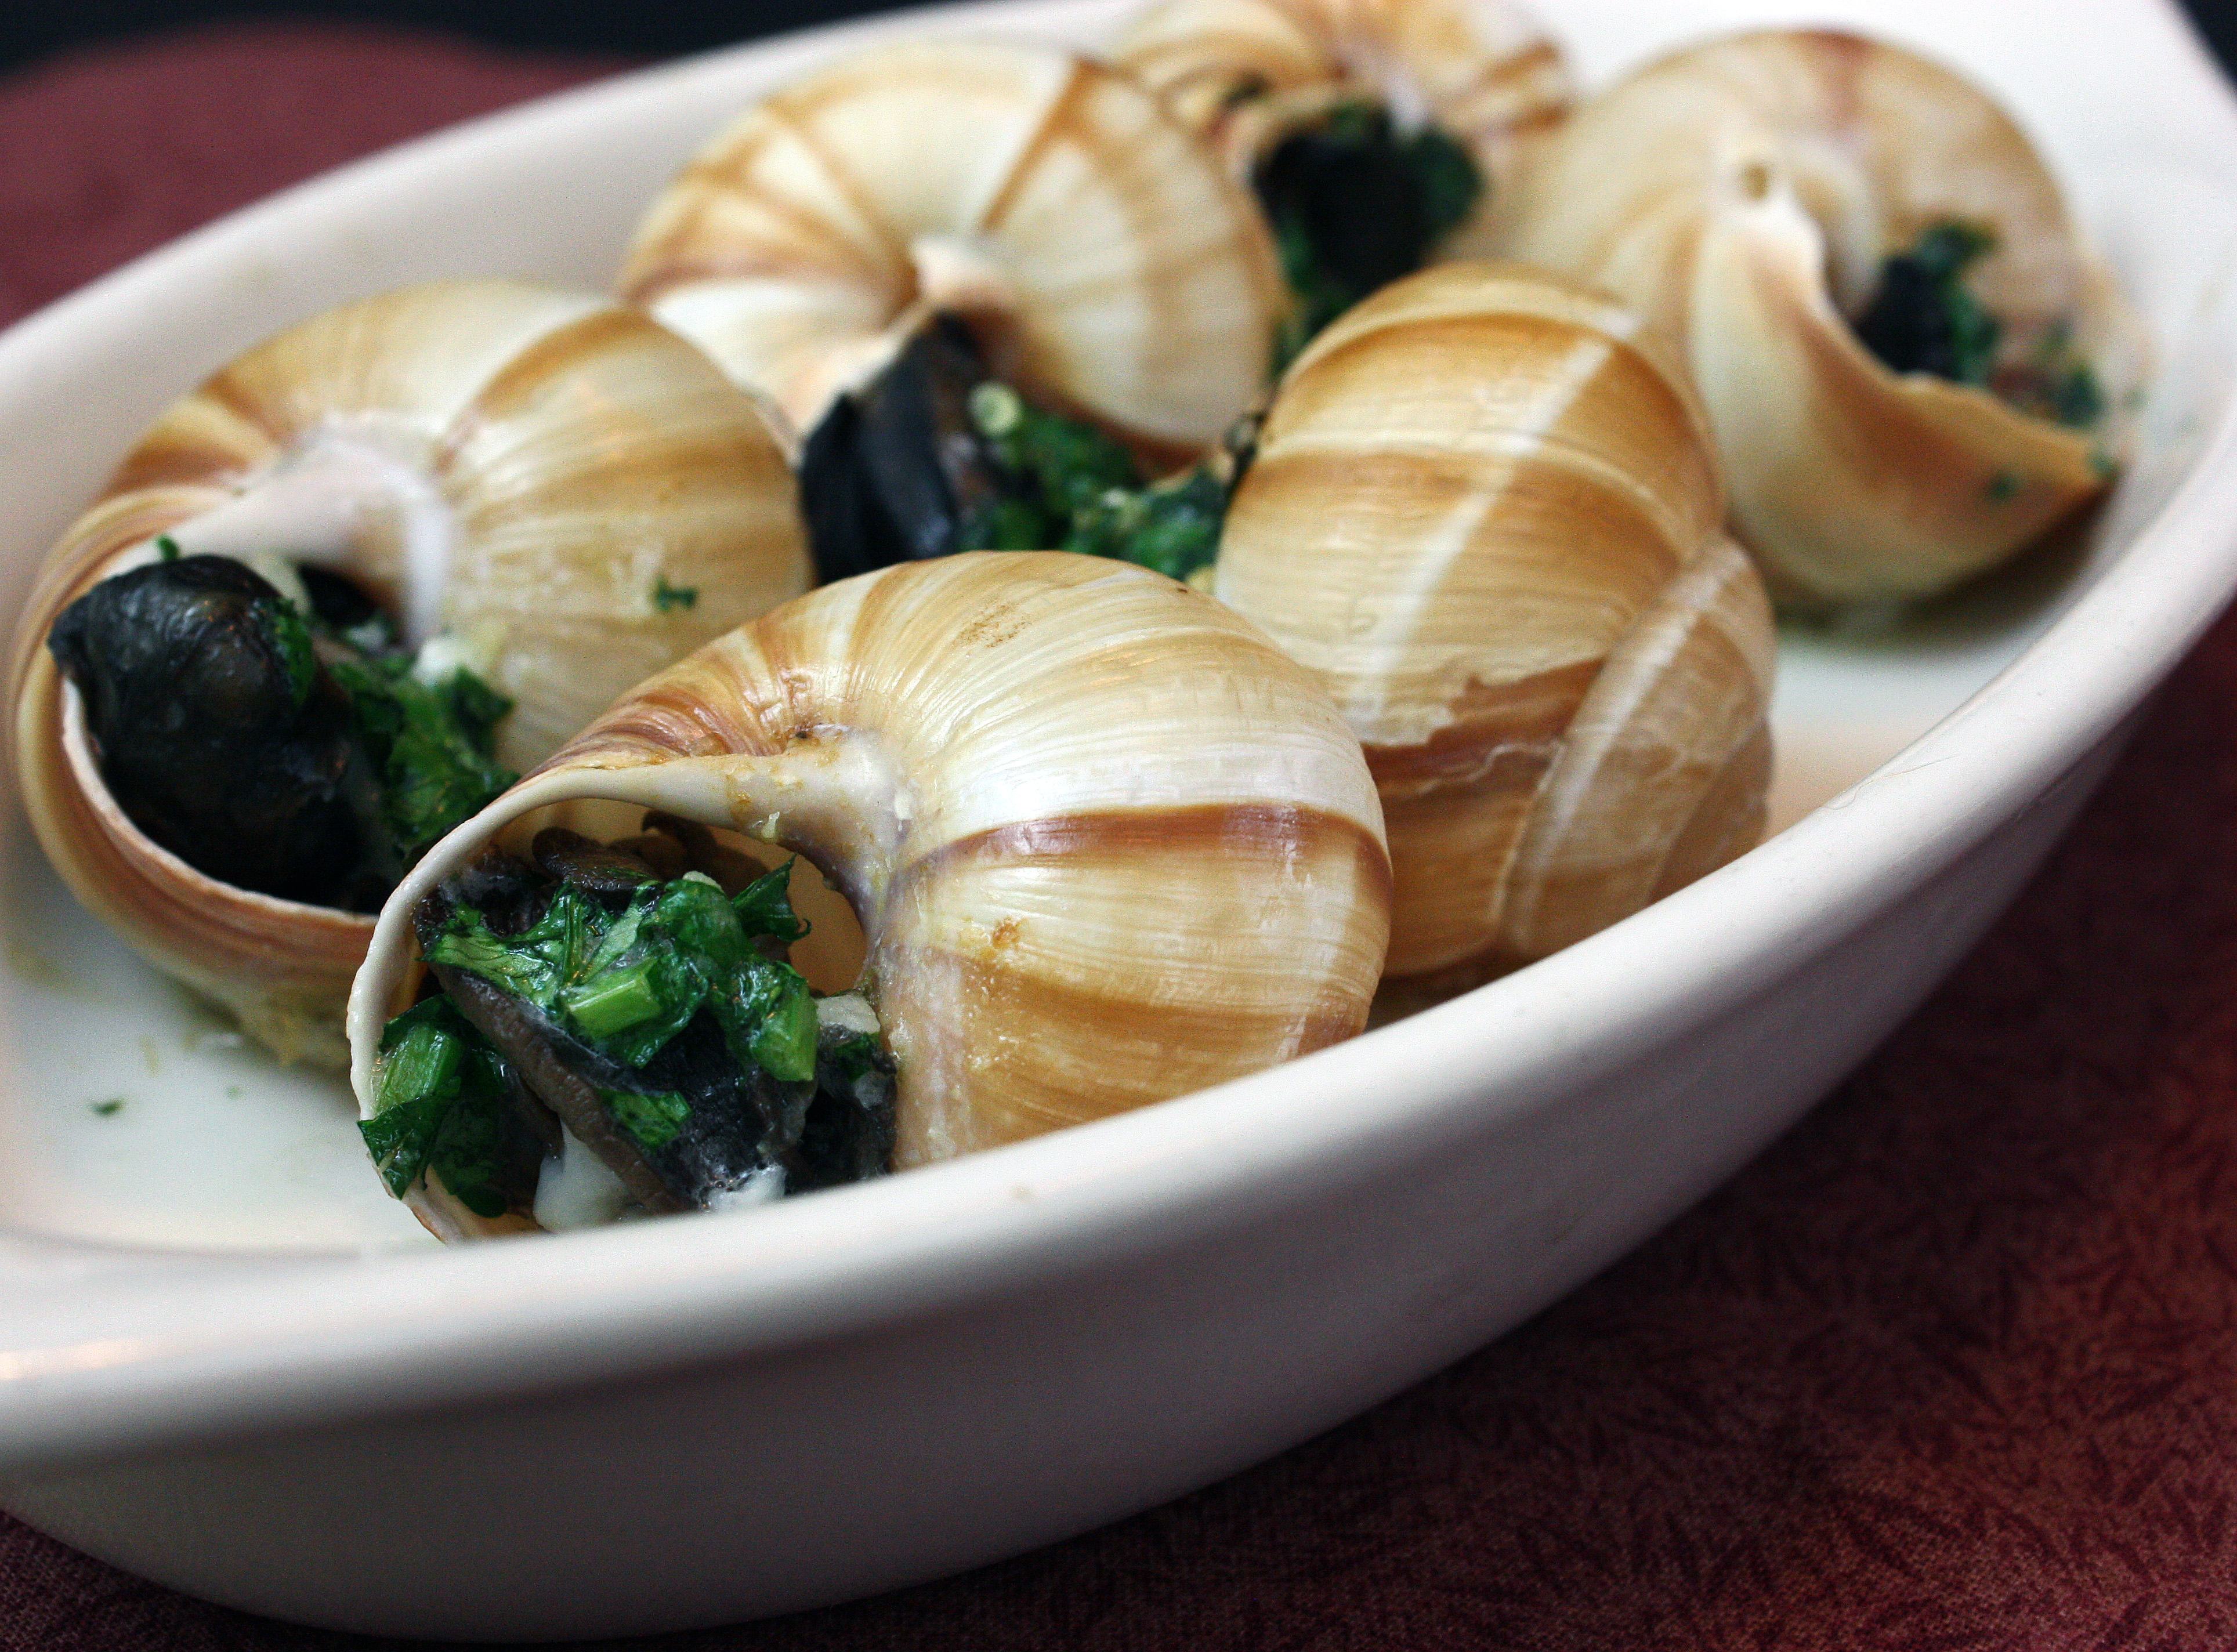 For the escargot recipe, visit Steamy Kitchen here .